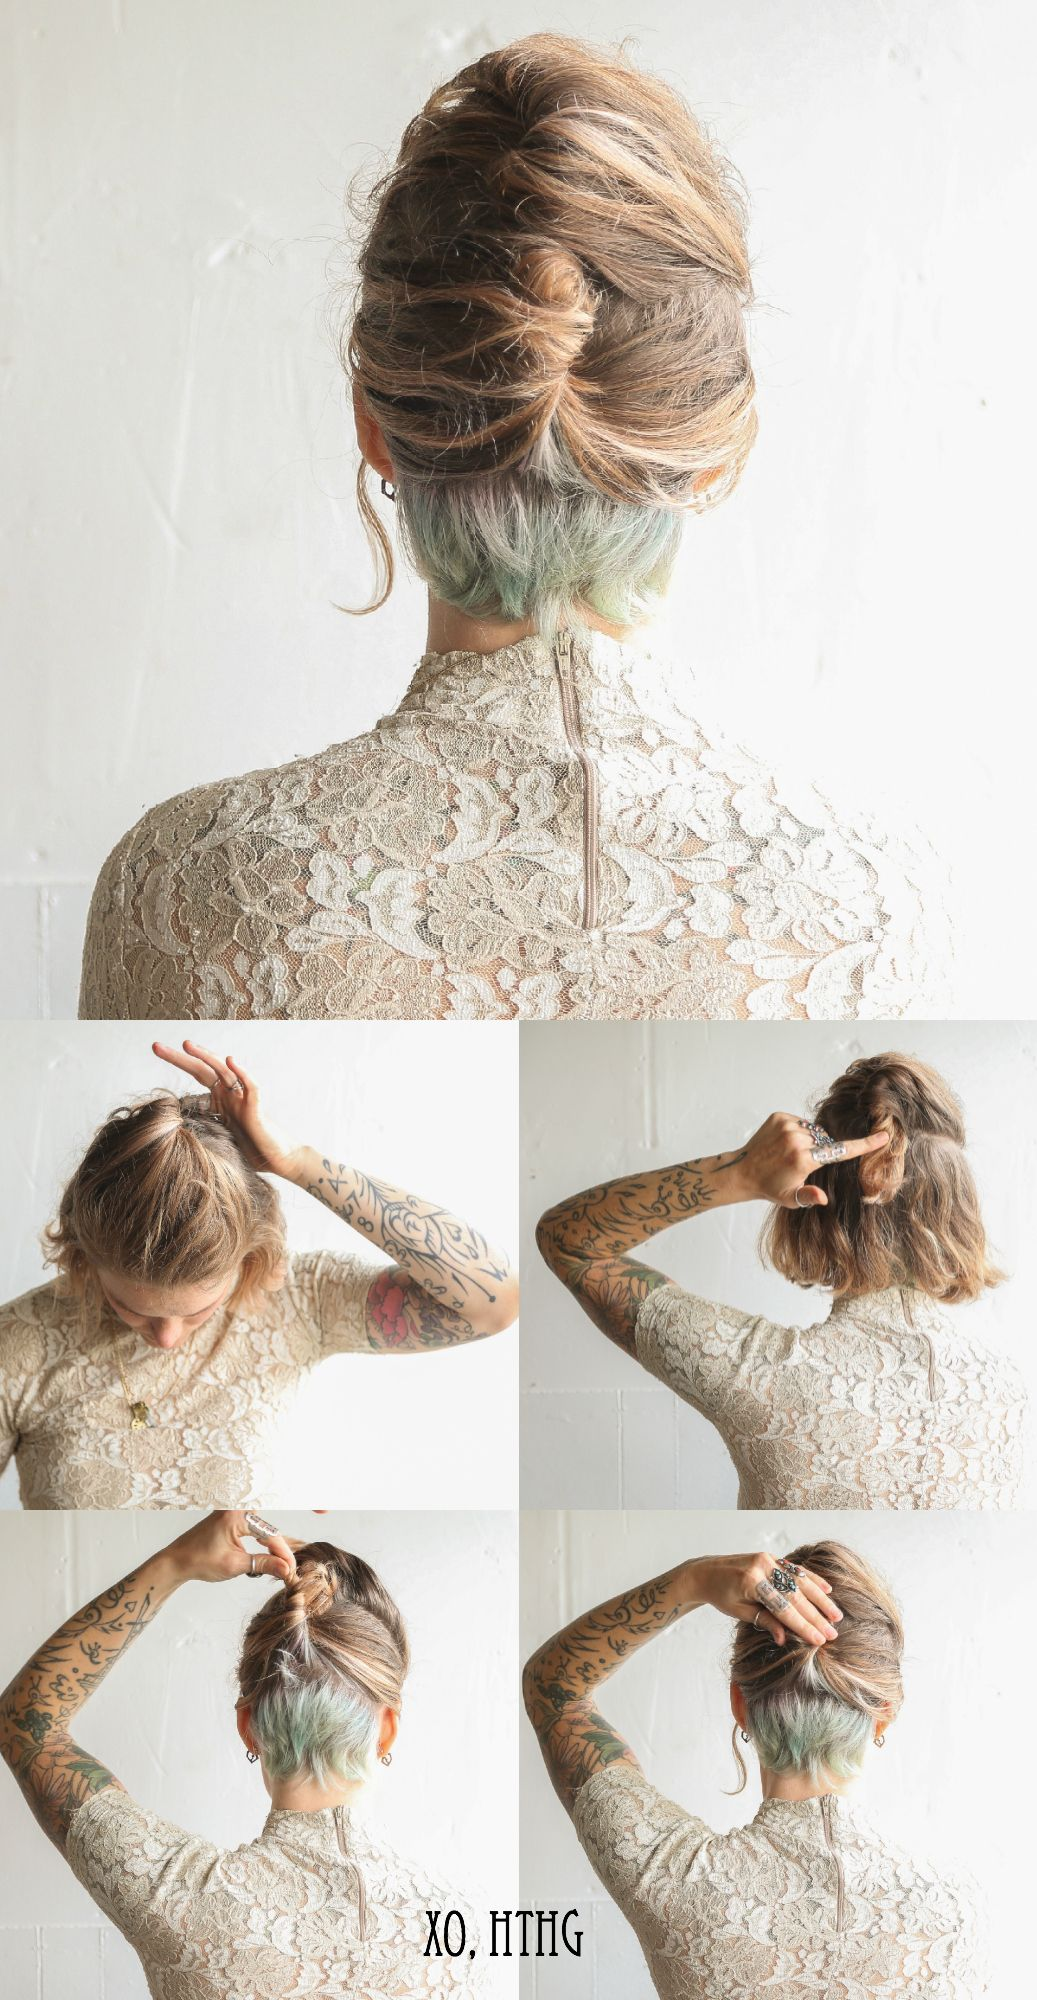 This Is All I Need Ill Die My Undercut Some Bright Color And Be - Undercut hairstyle diy